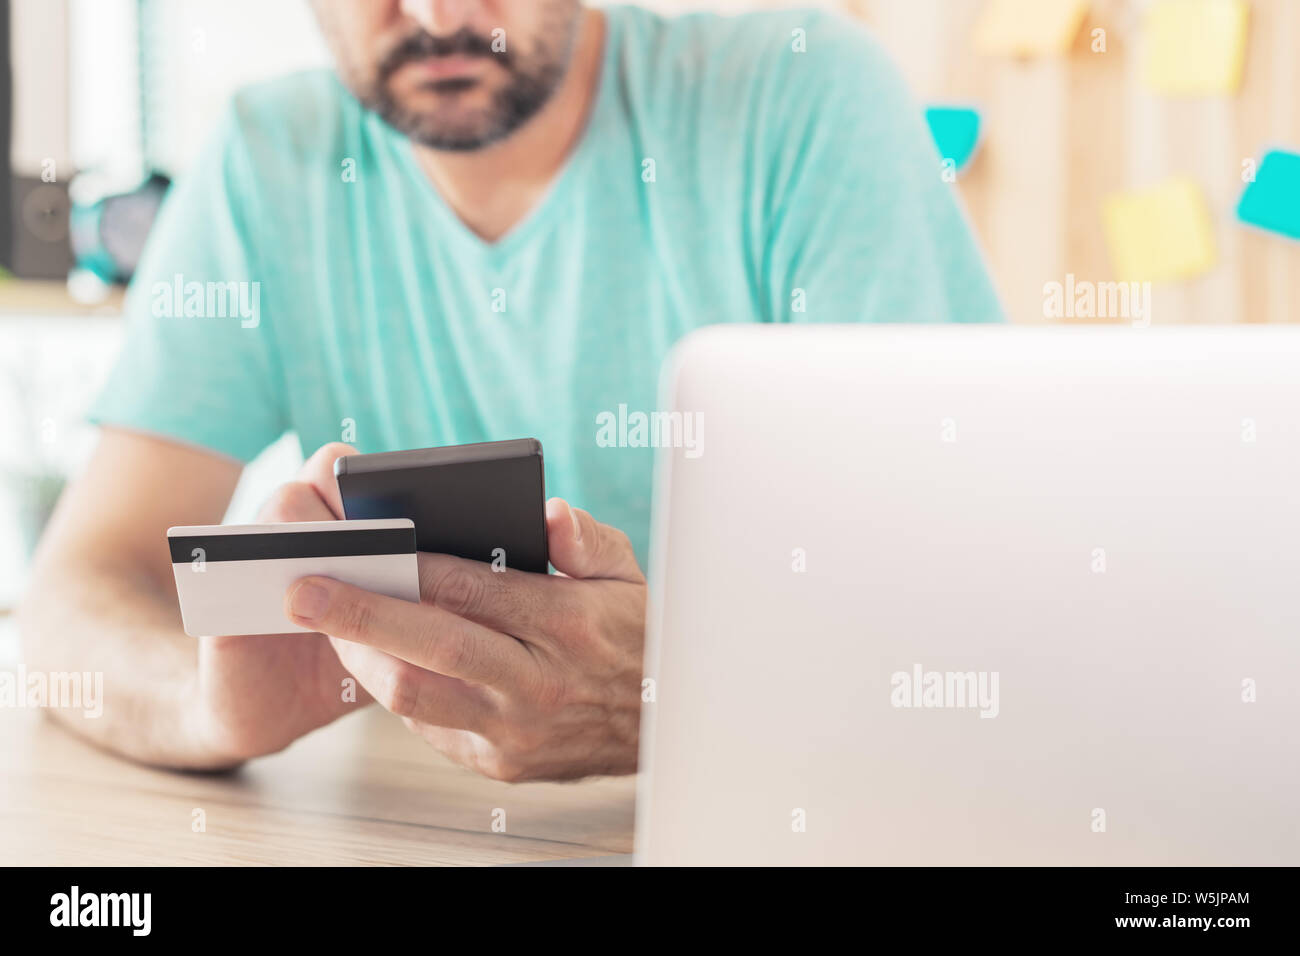 Online shopping with credit card and smart phone, casual man